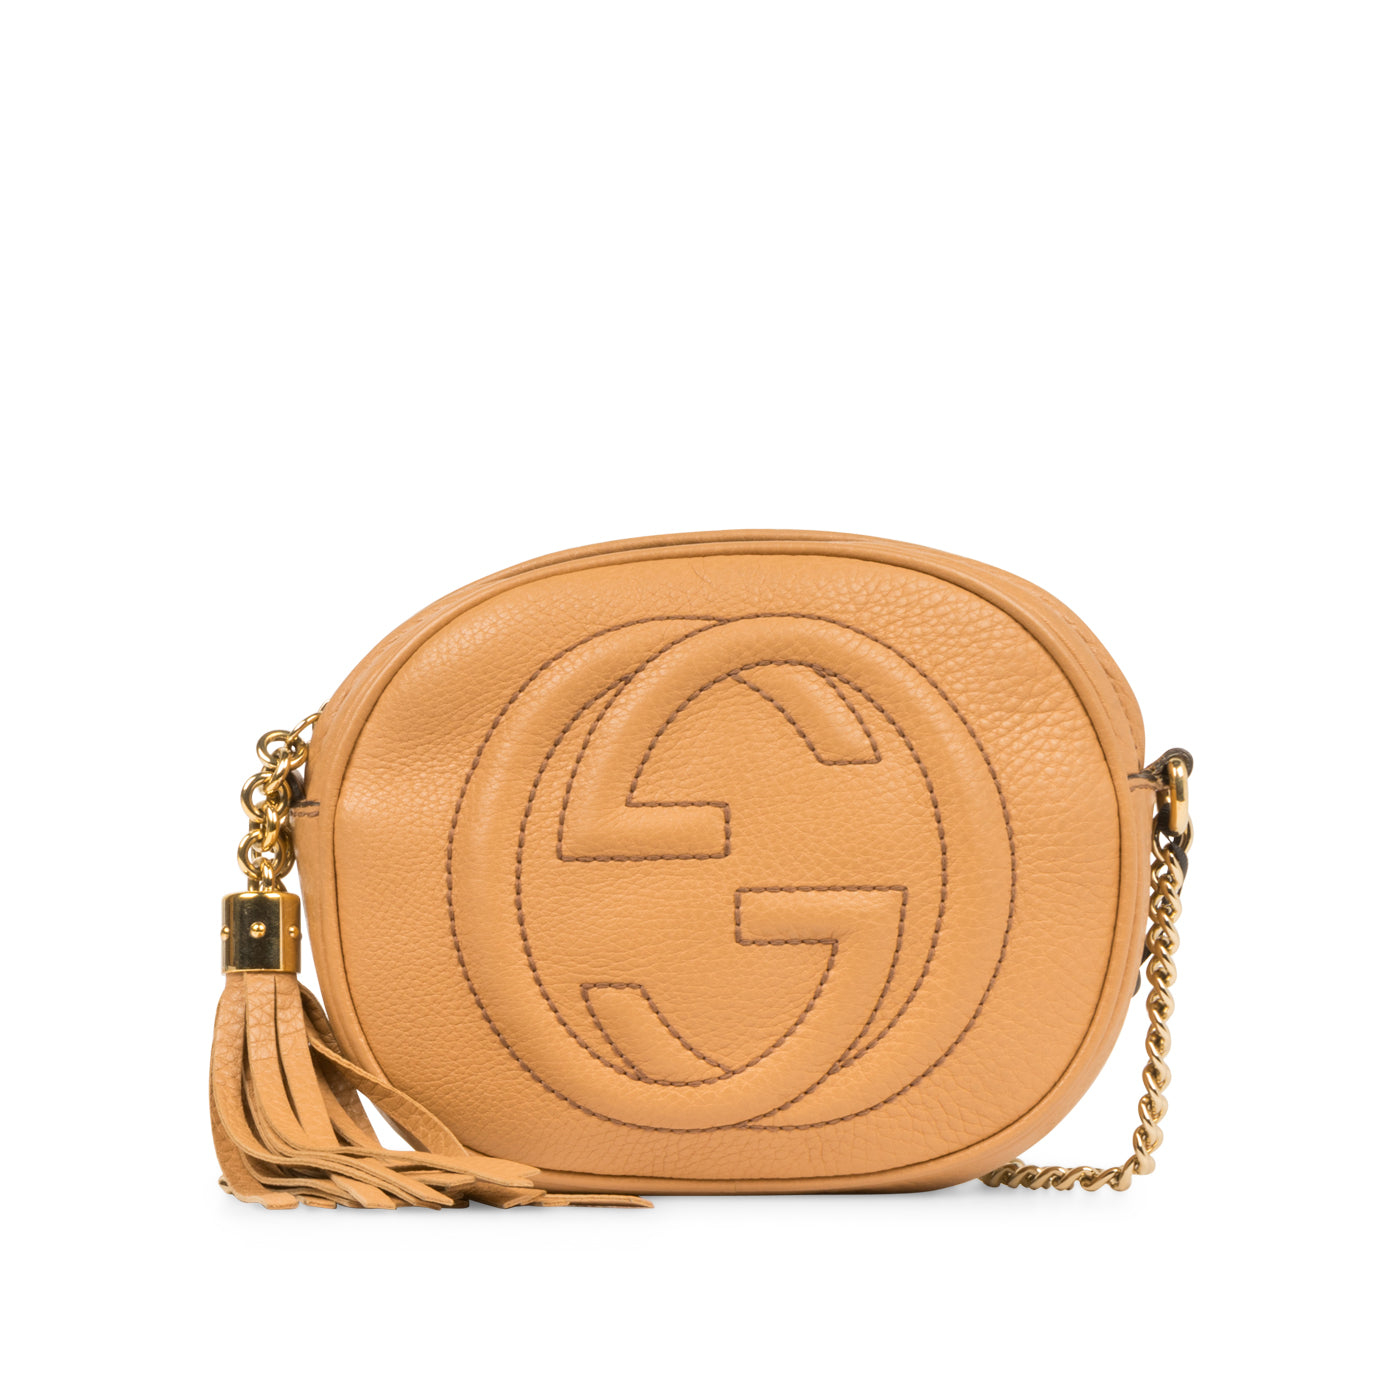 8697774c5 Gucci - Soho Disco Chain Bag - Pre Loved | Bagista